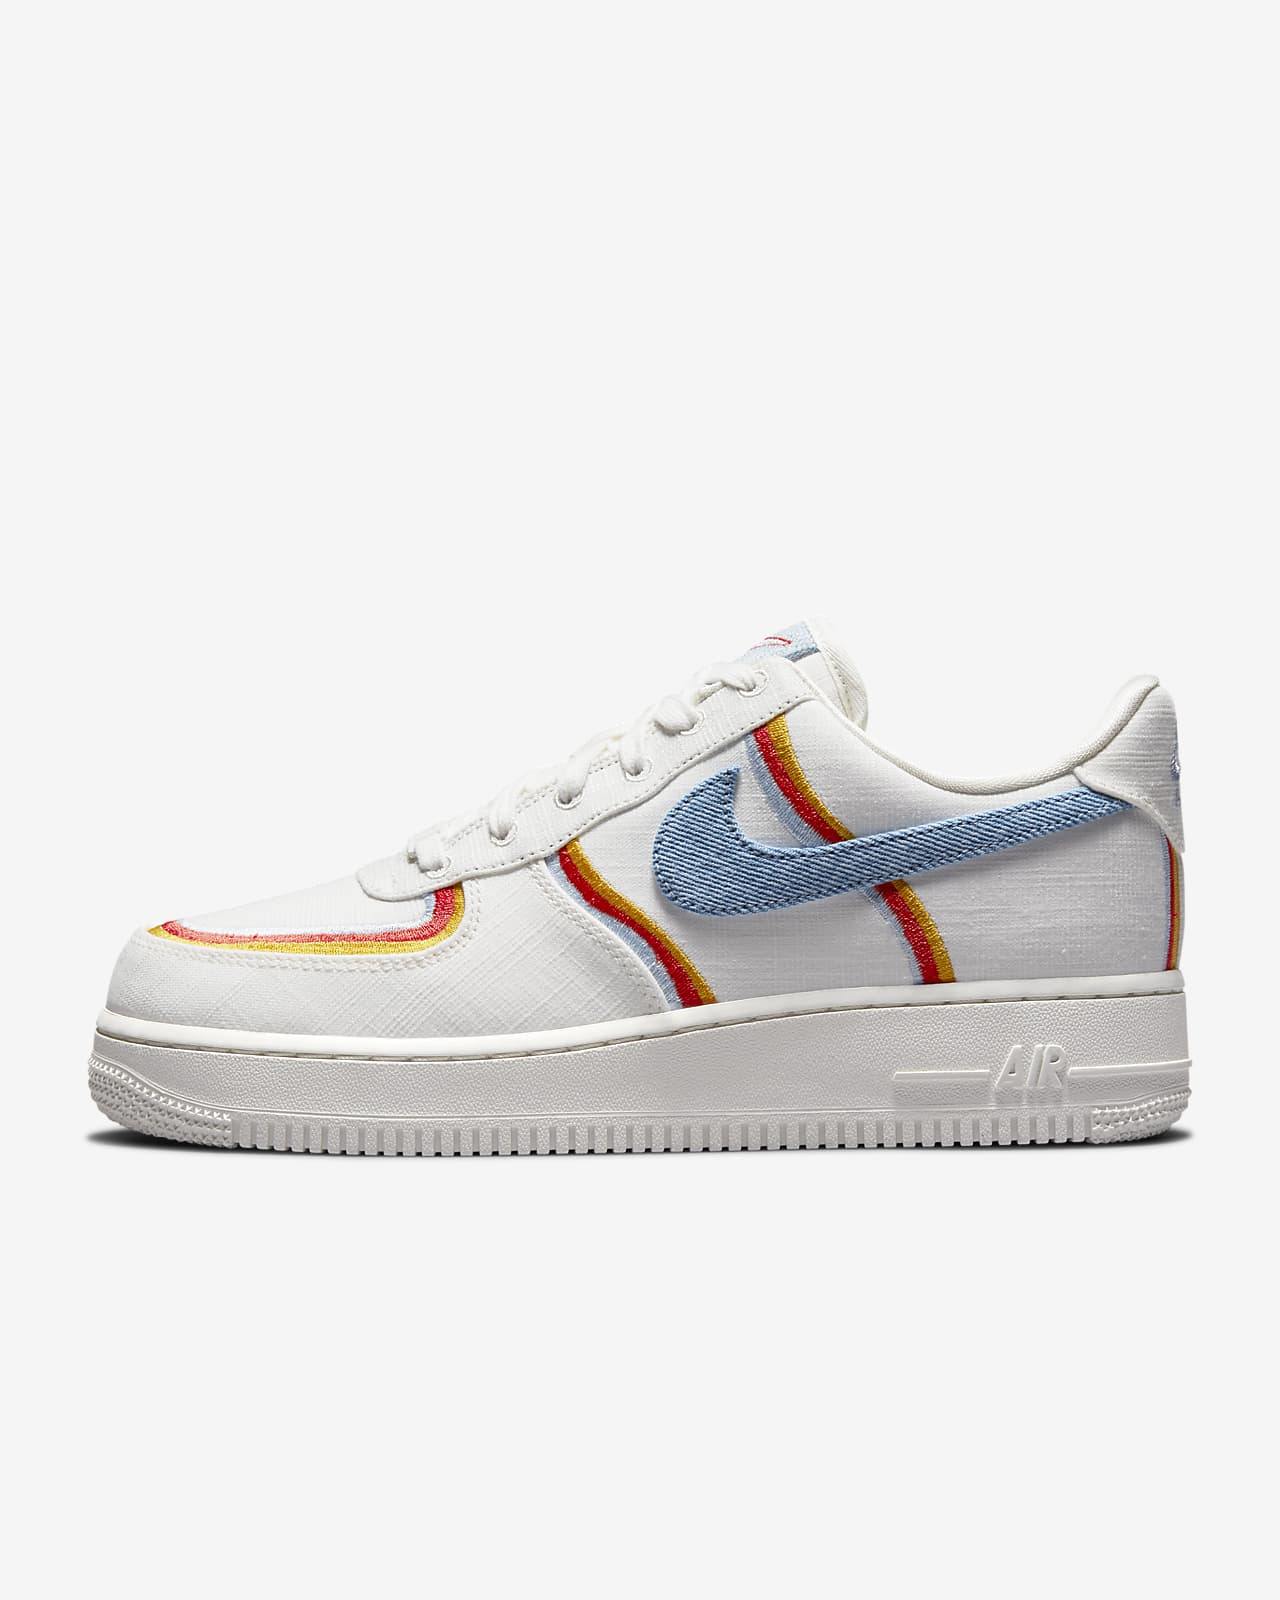 Nike Air Force 1 '07 LV8 Women's Shoe